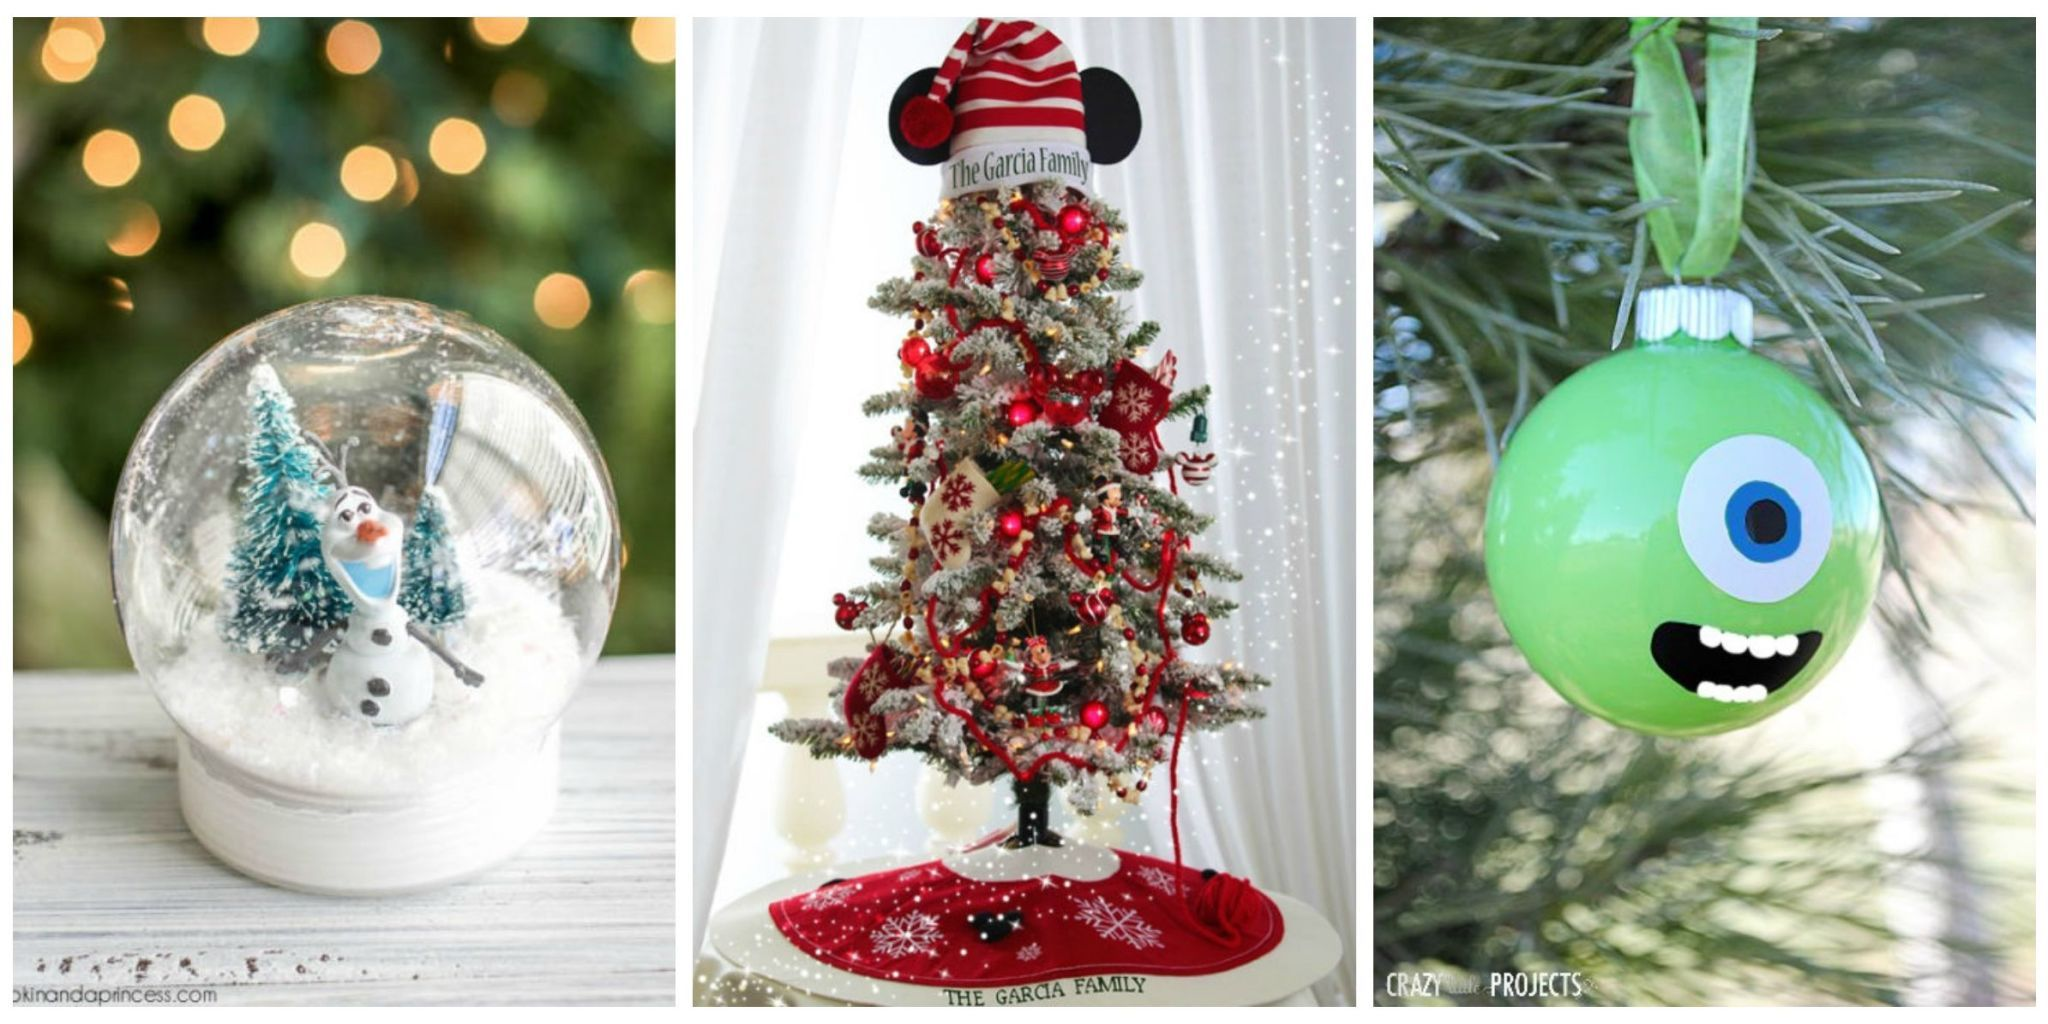 From Ornaments To Stockings, The Holiday Season Wonu0027t Be Complete Without  These DIY Disney Decorations.